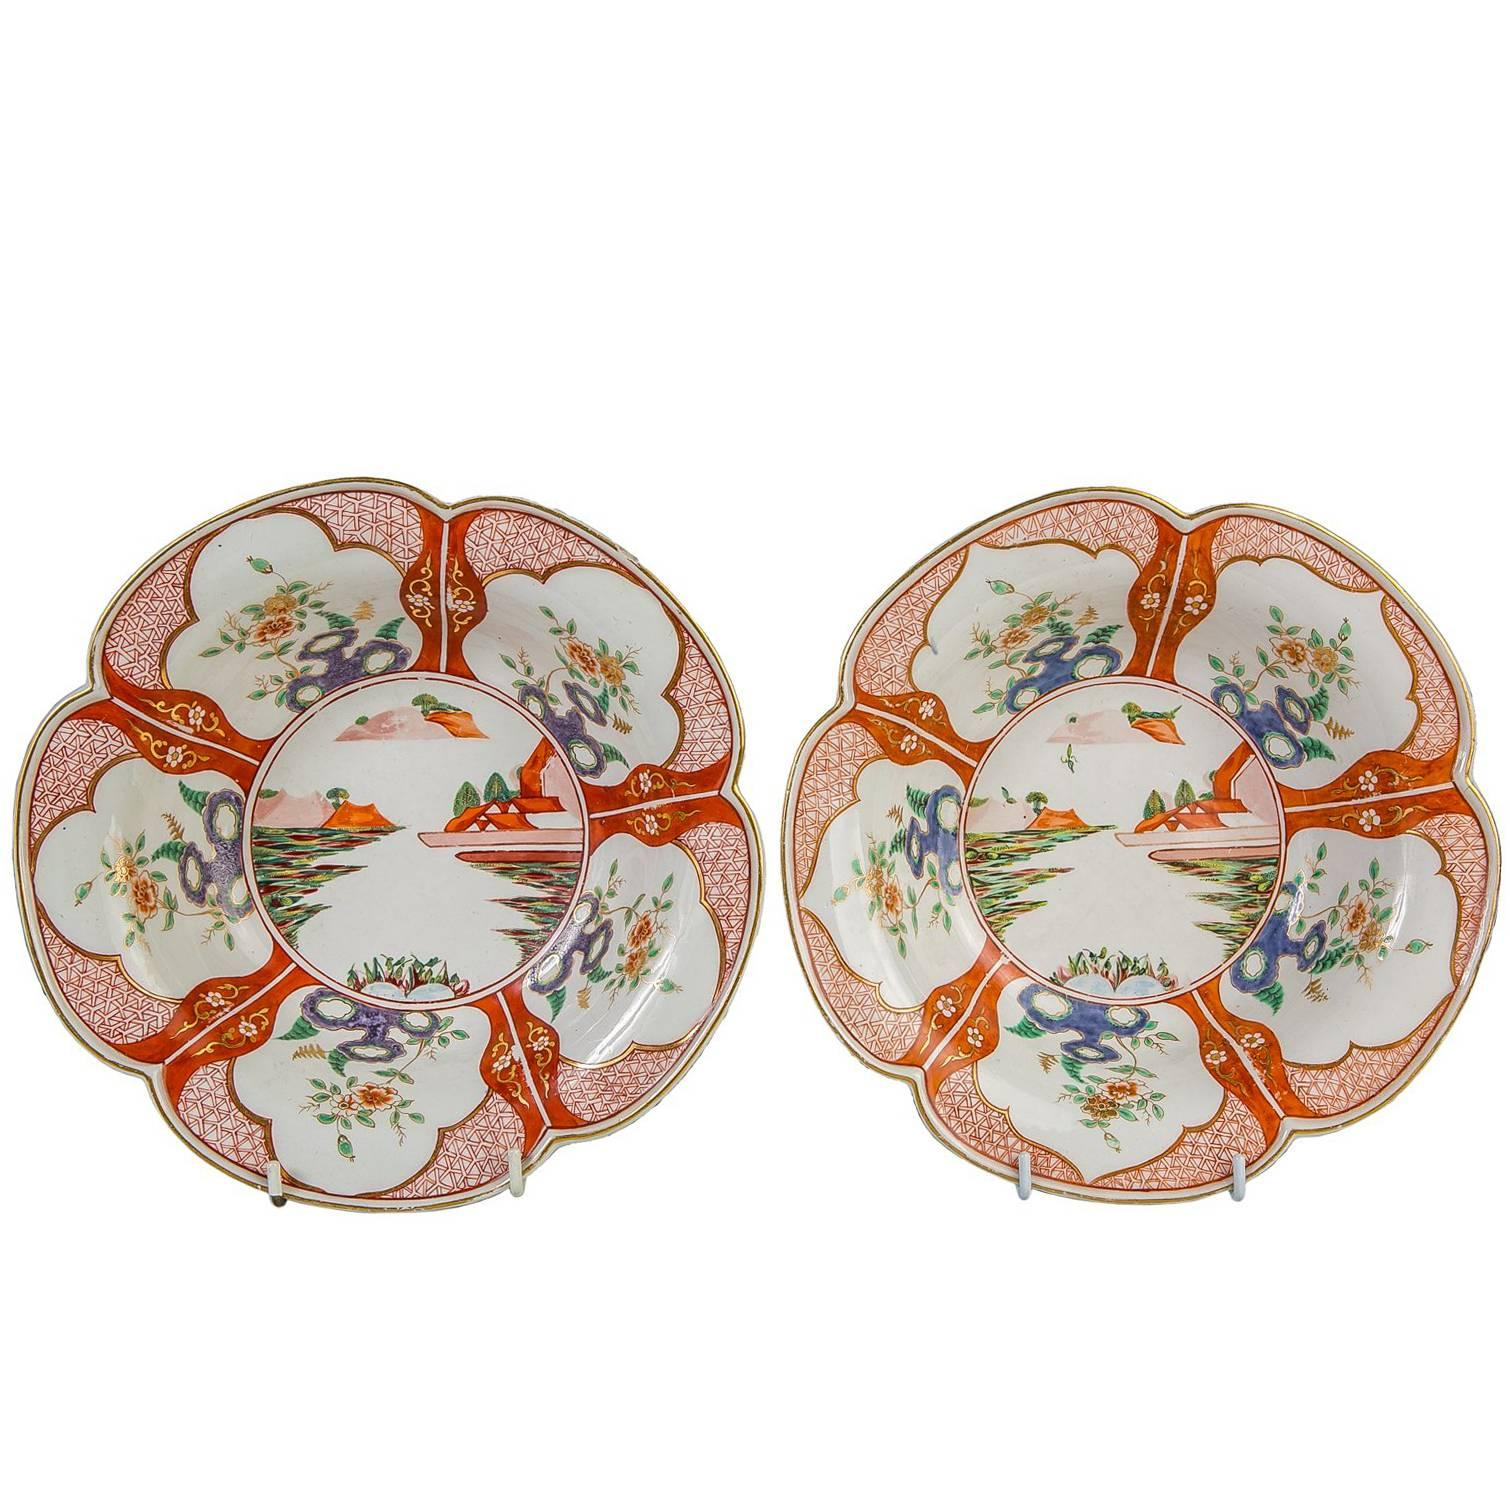 Pair 18th Century Porcelain Bowls With Chinoiserie Decoration England circa 1765